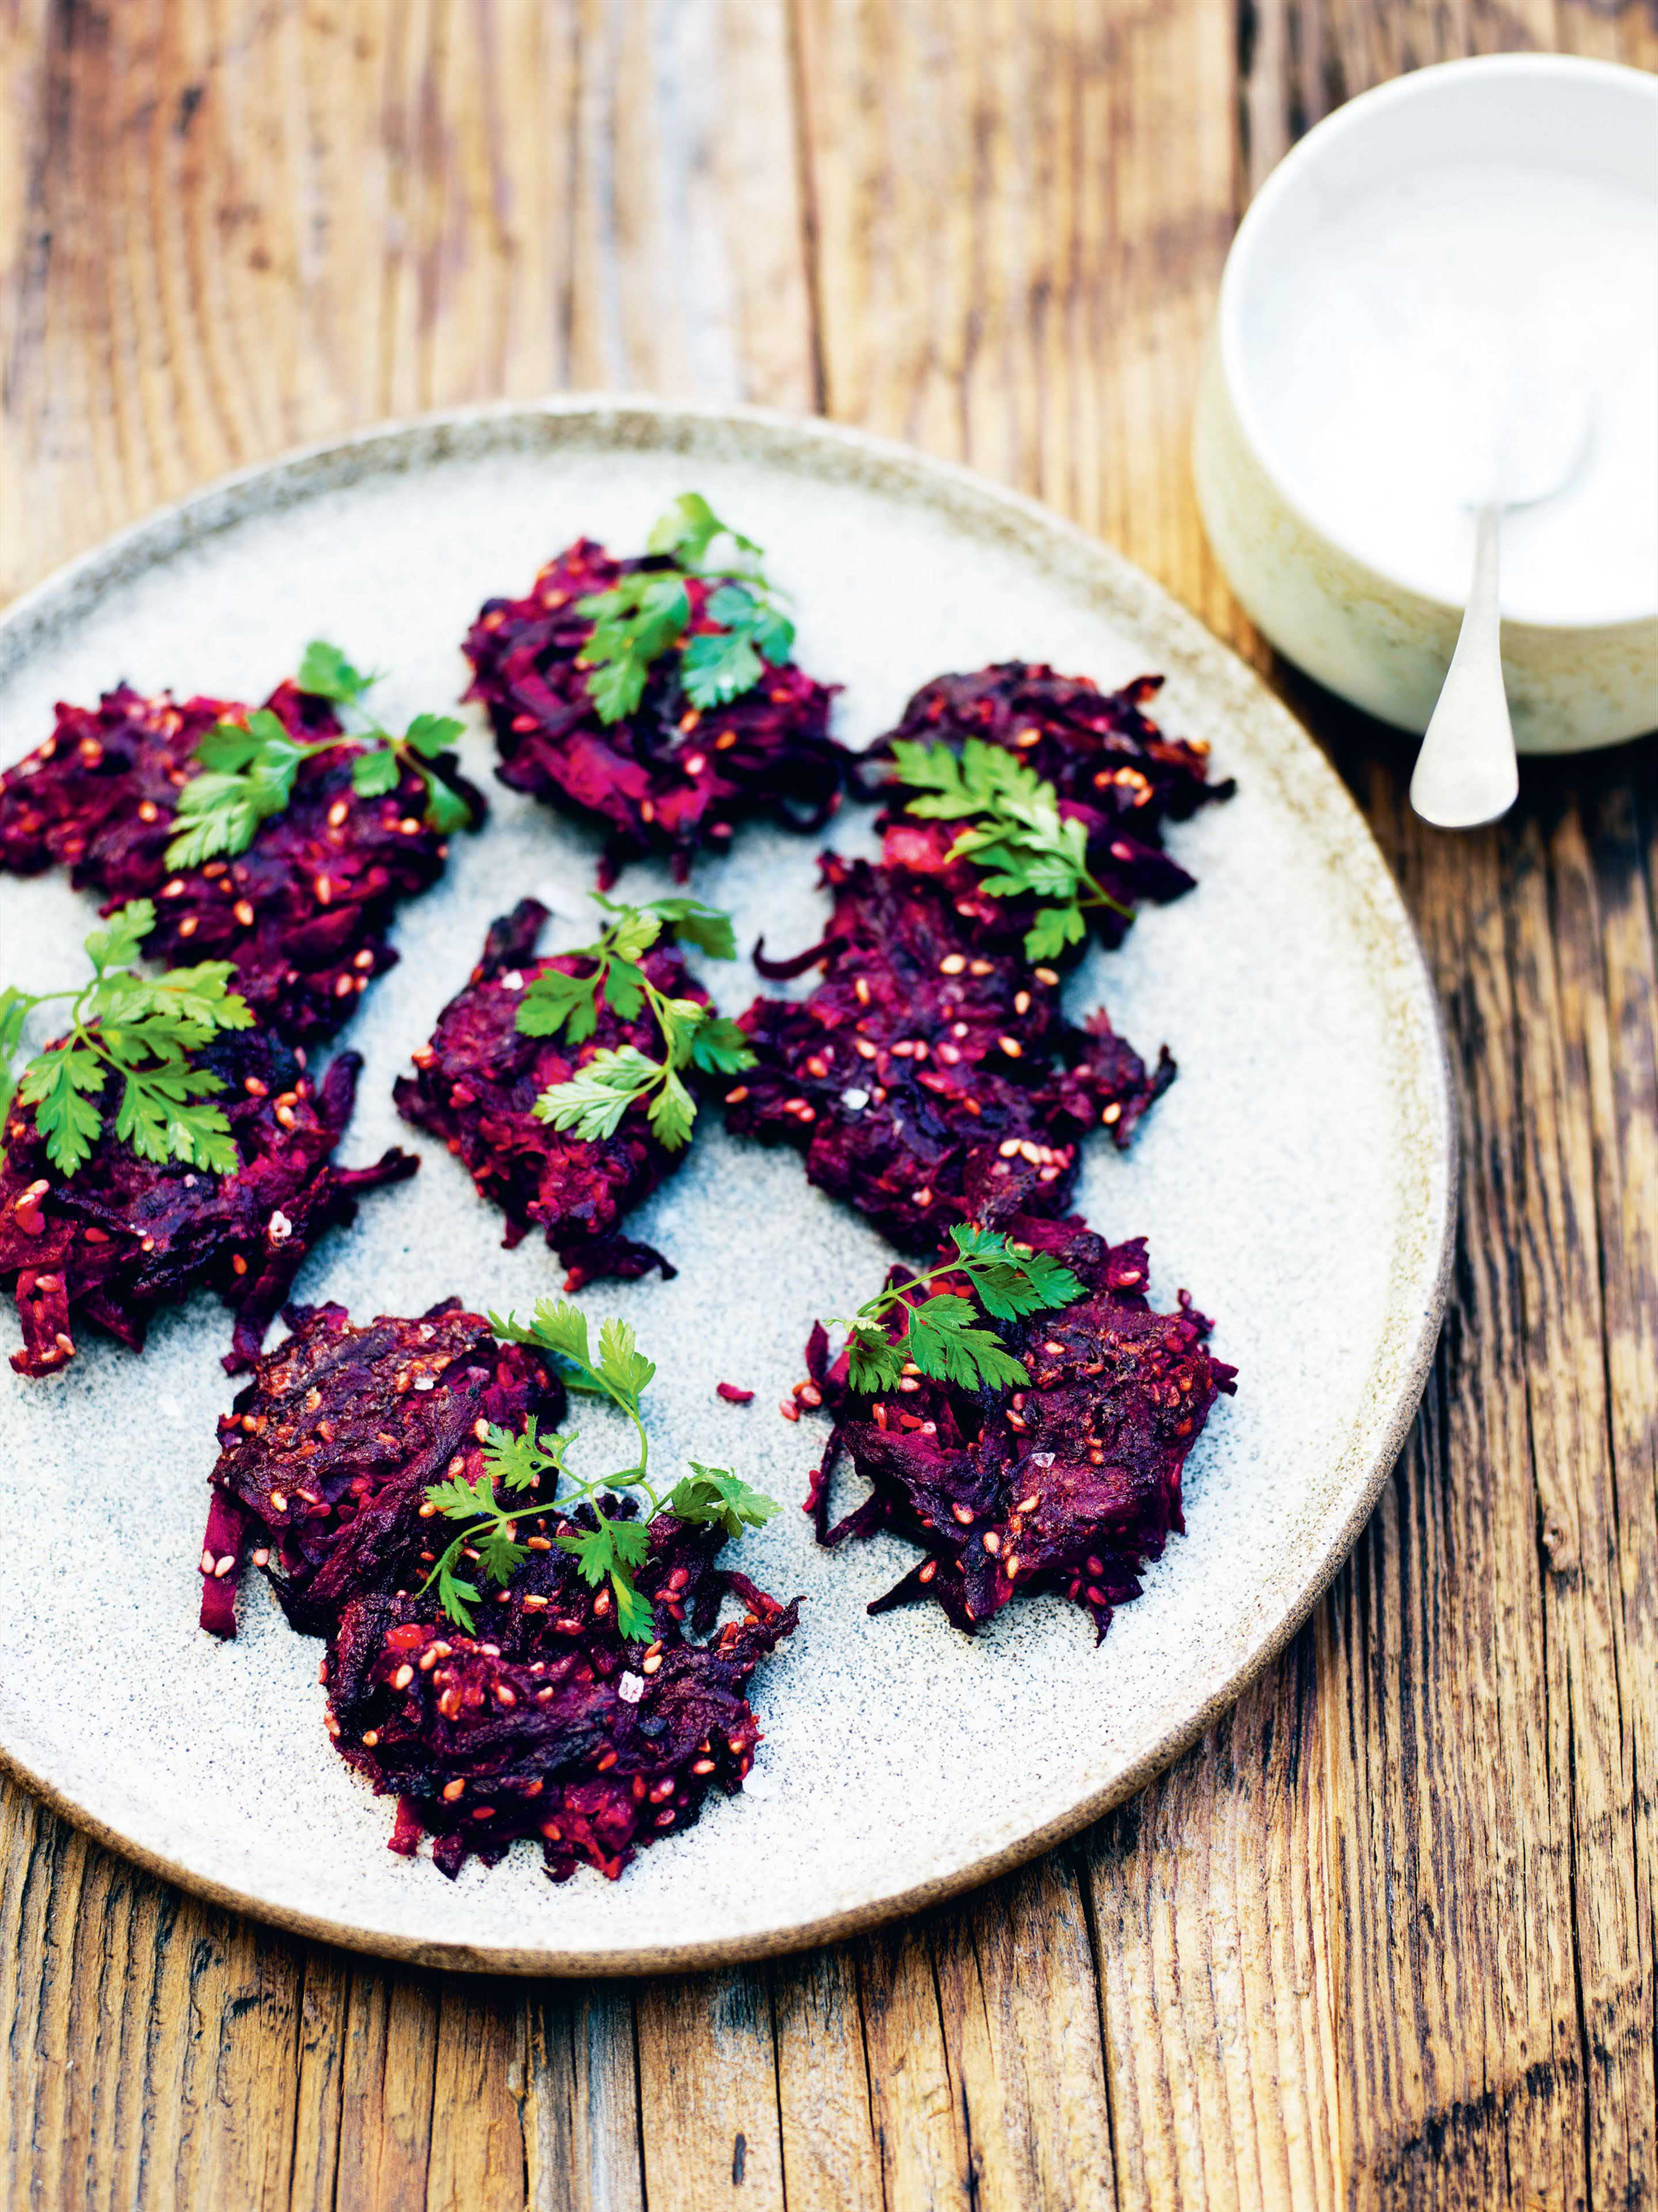 Beetroot patties with horseradish cream